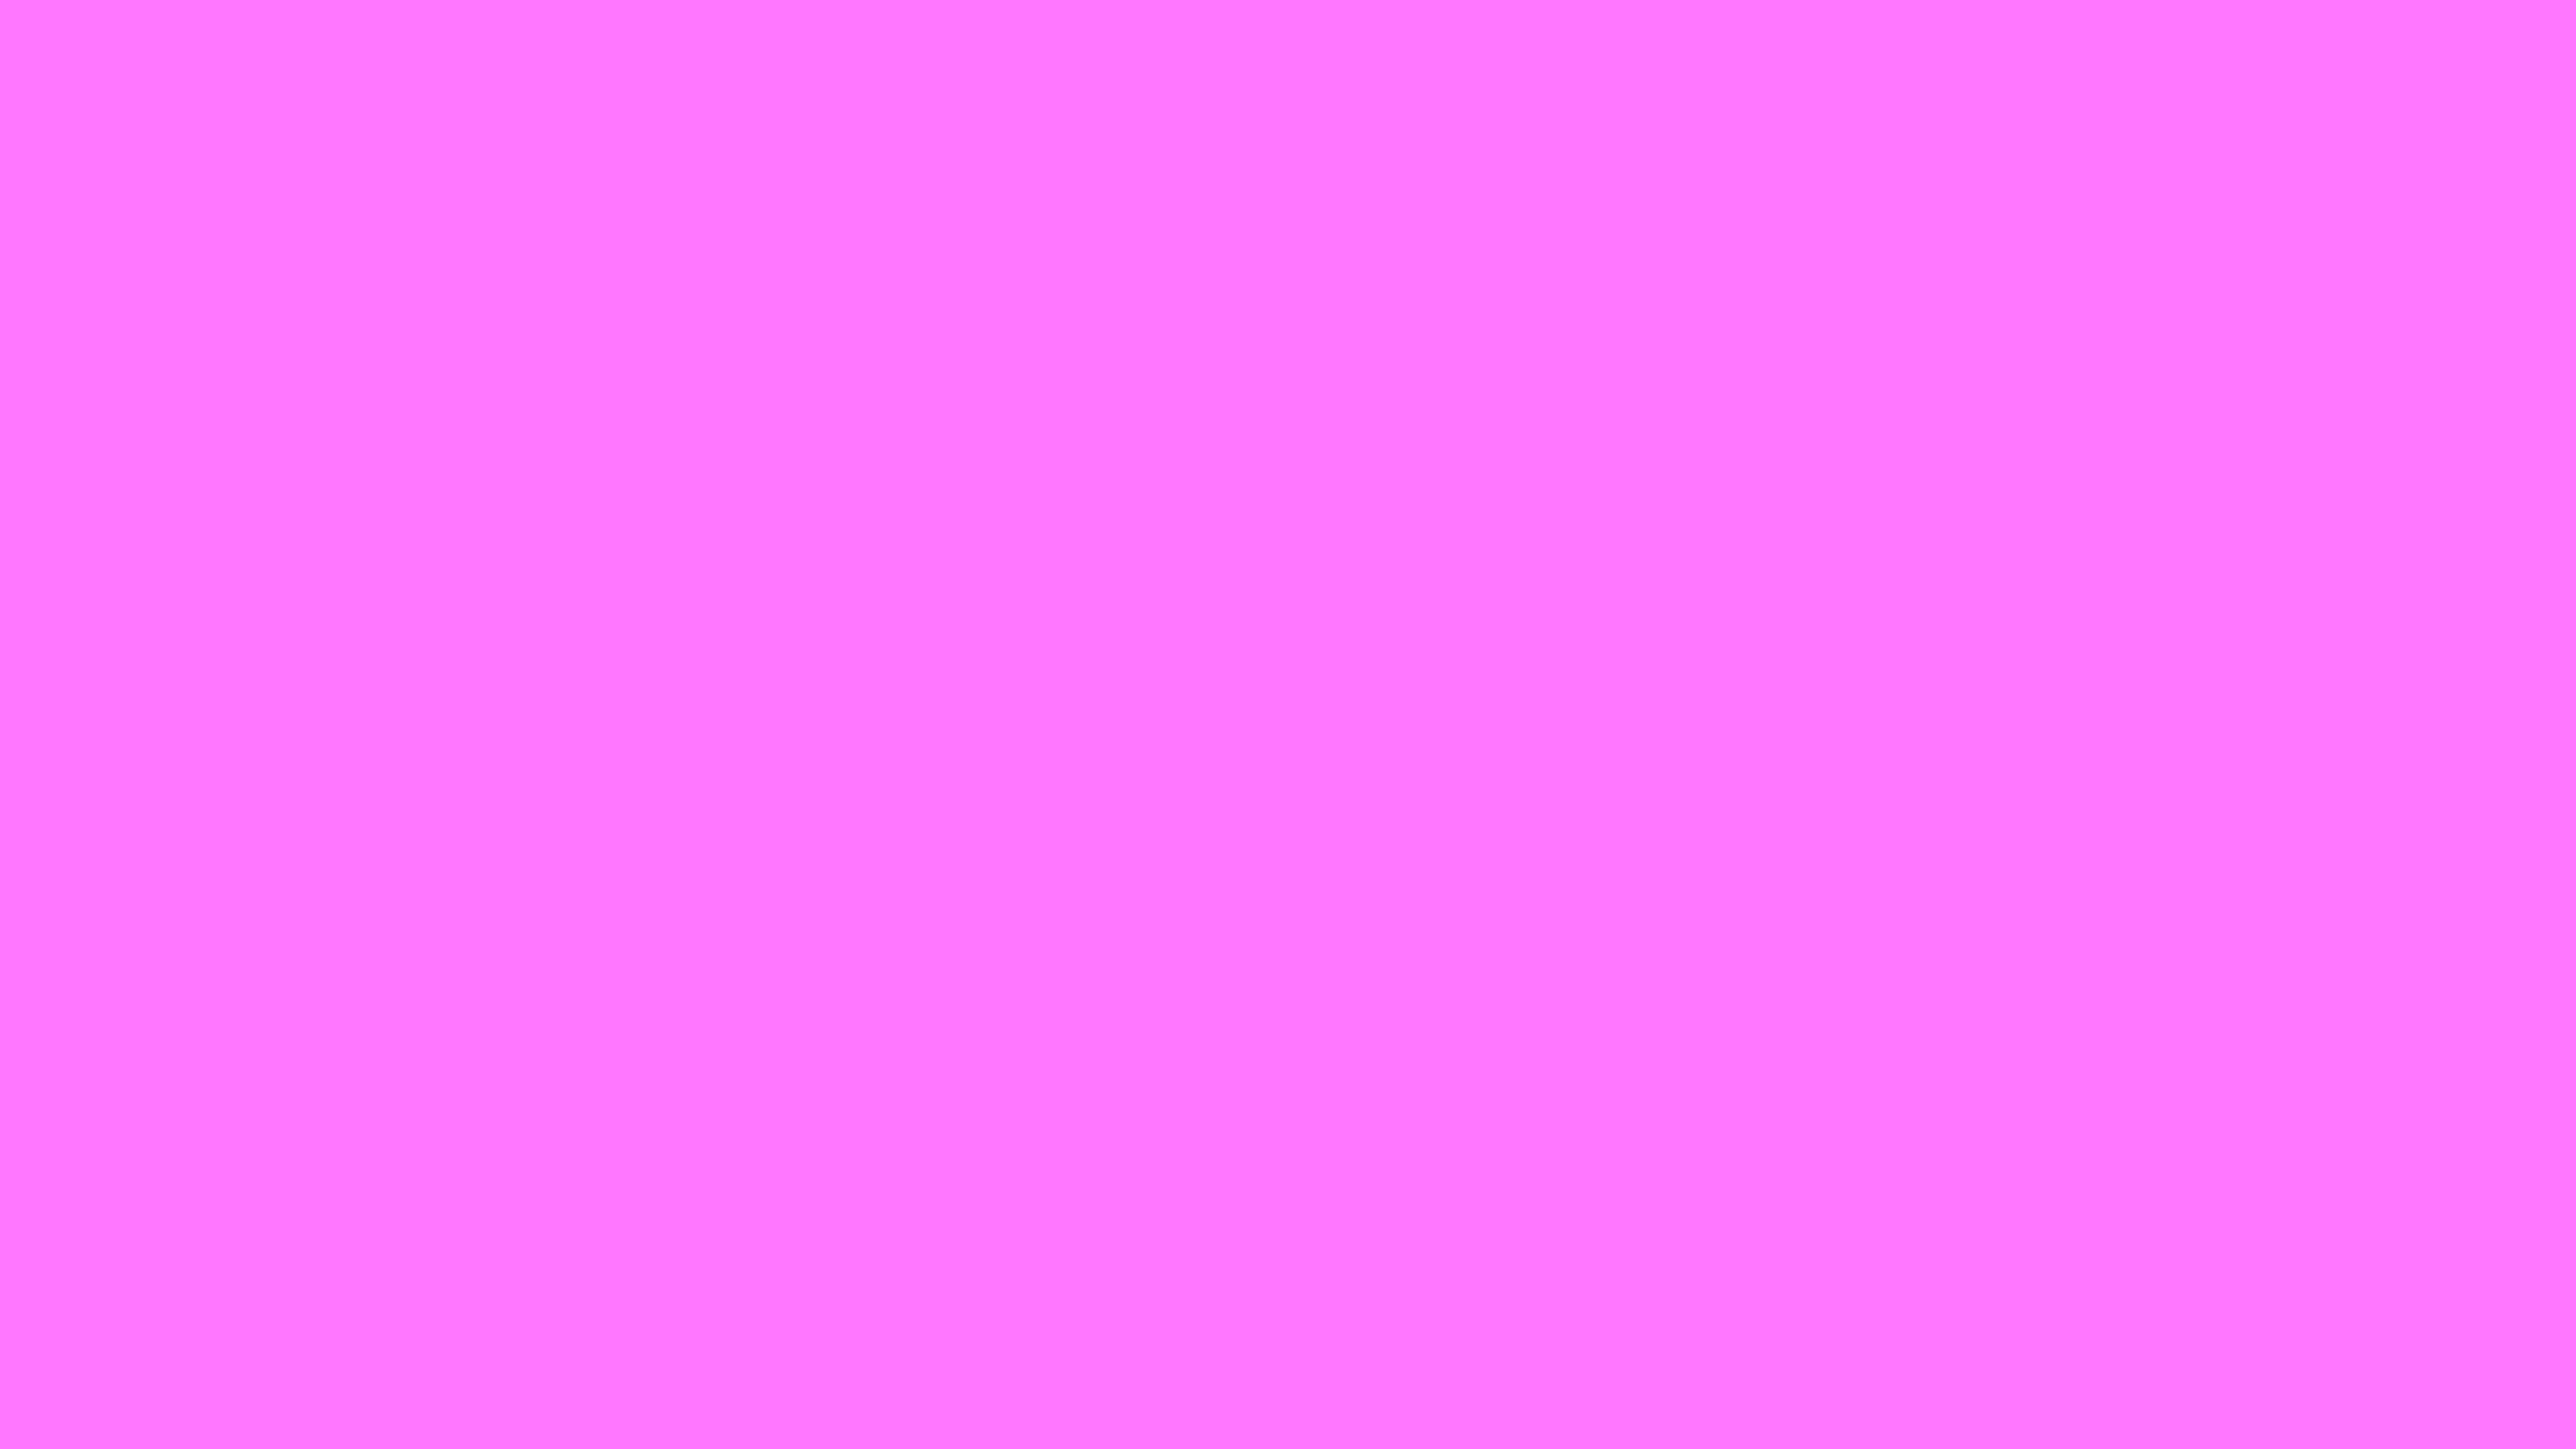 3840x2160 Fuchsia Pink Solid Color Background